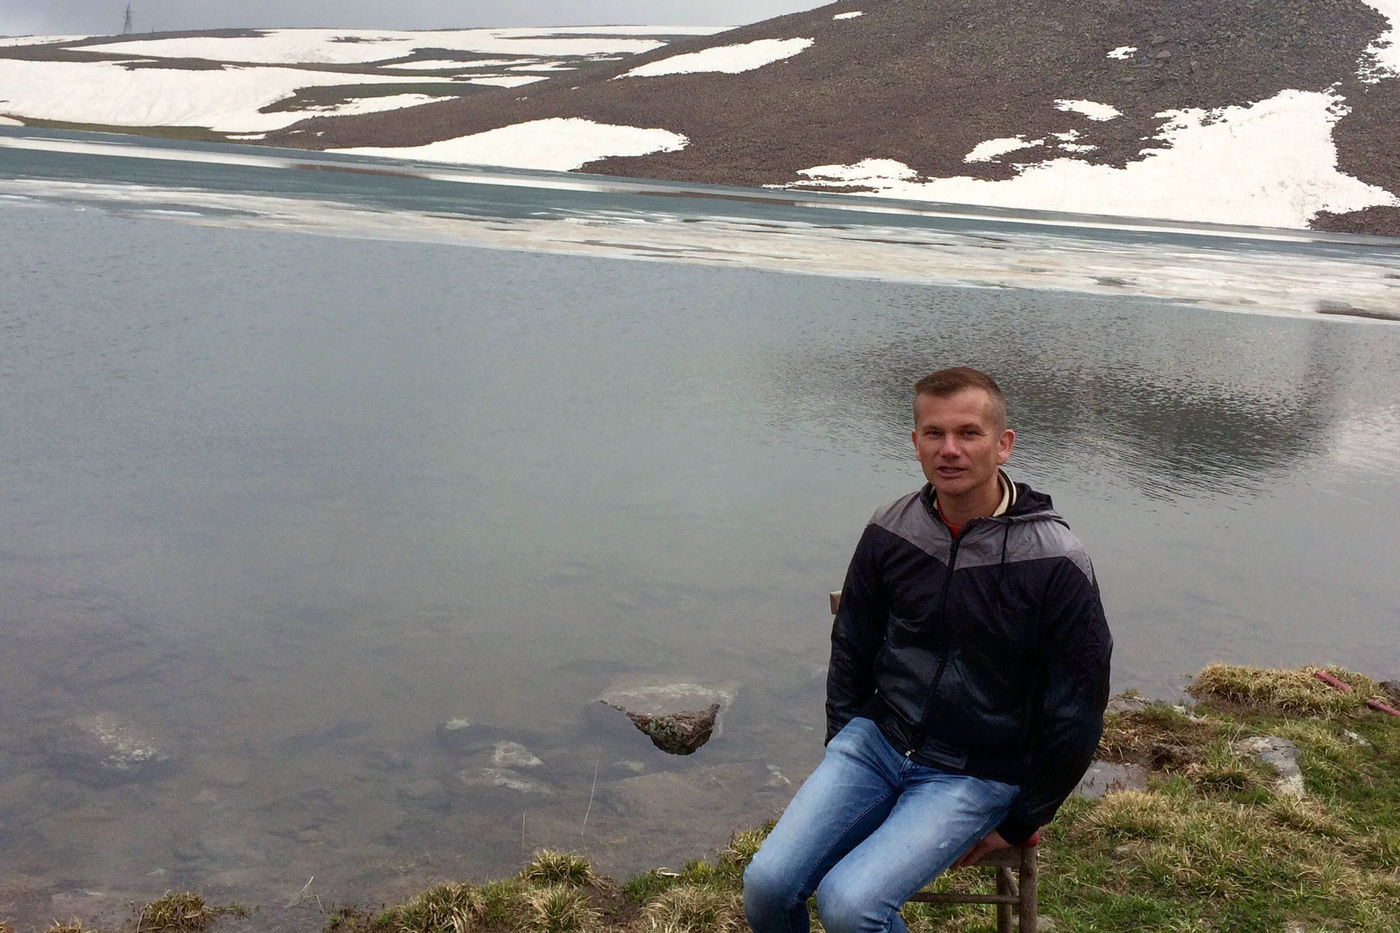 A man sitting on a chair in front of a river, with a snowy glacier in the background.